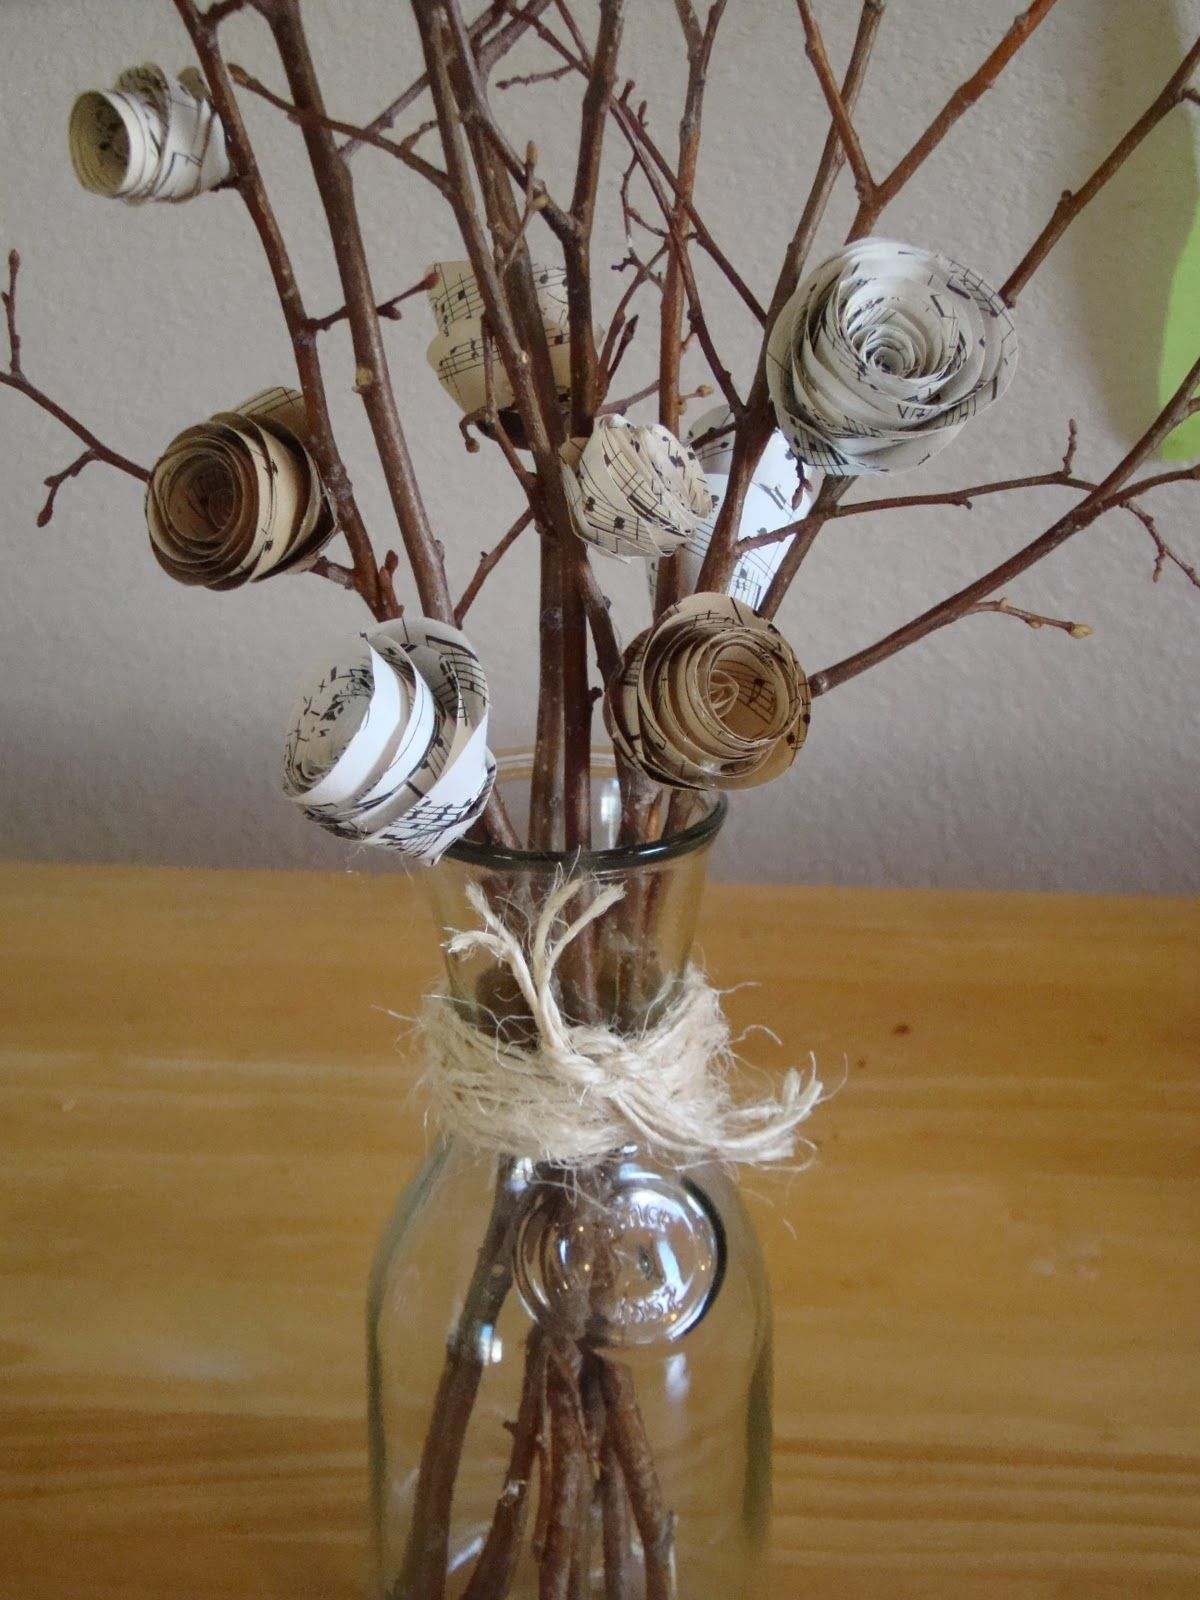 Flowers by post vase - Make Paper Flowers With Sheet Music Guest Post From Kim From Too Much Time On My Hands